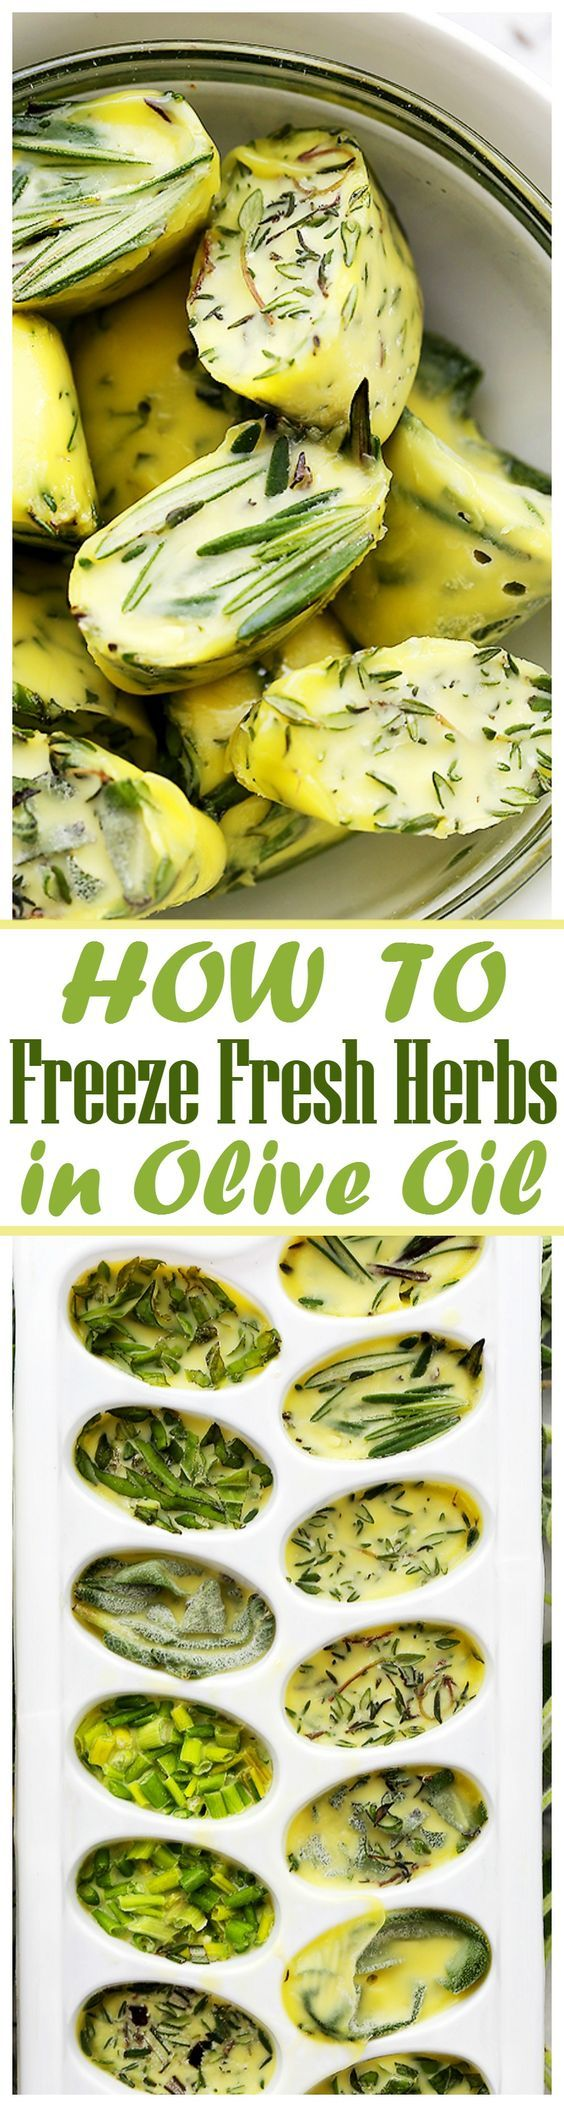 How to Freeze Fresh Herbs in Olive Oil - Freezing fresh herbs in olive oil is the perfect way to preserve herbs! AND! It can go from the freezer straight to the frying pan. #starfinefoods